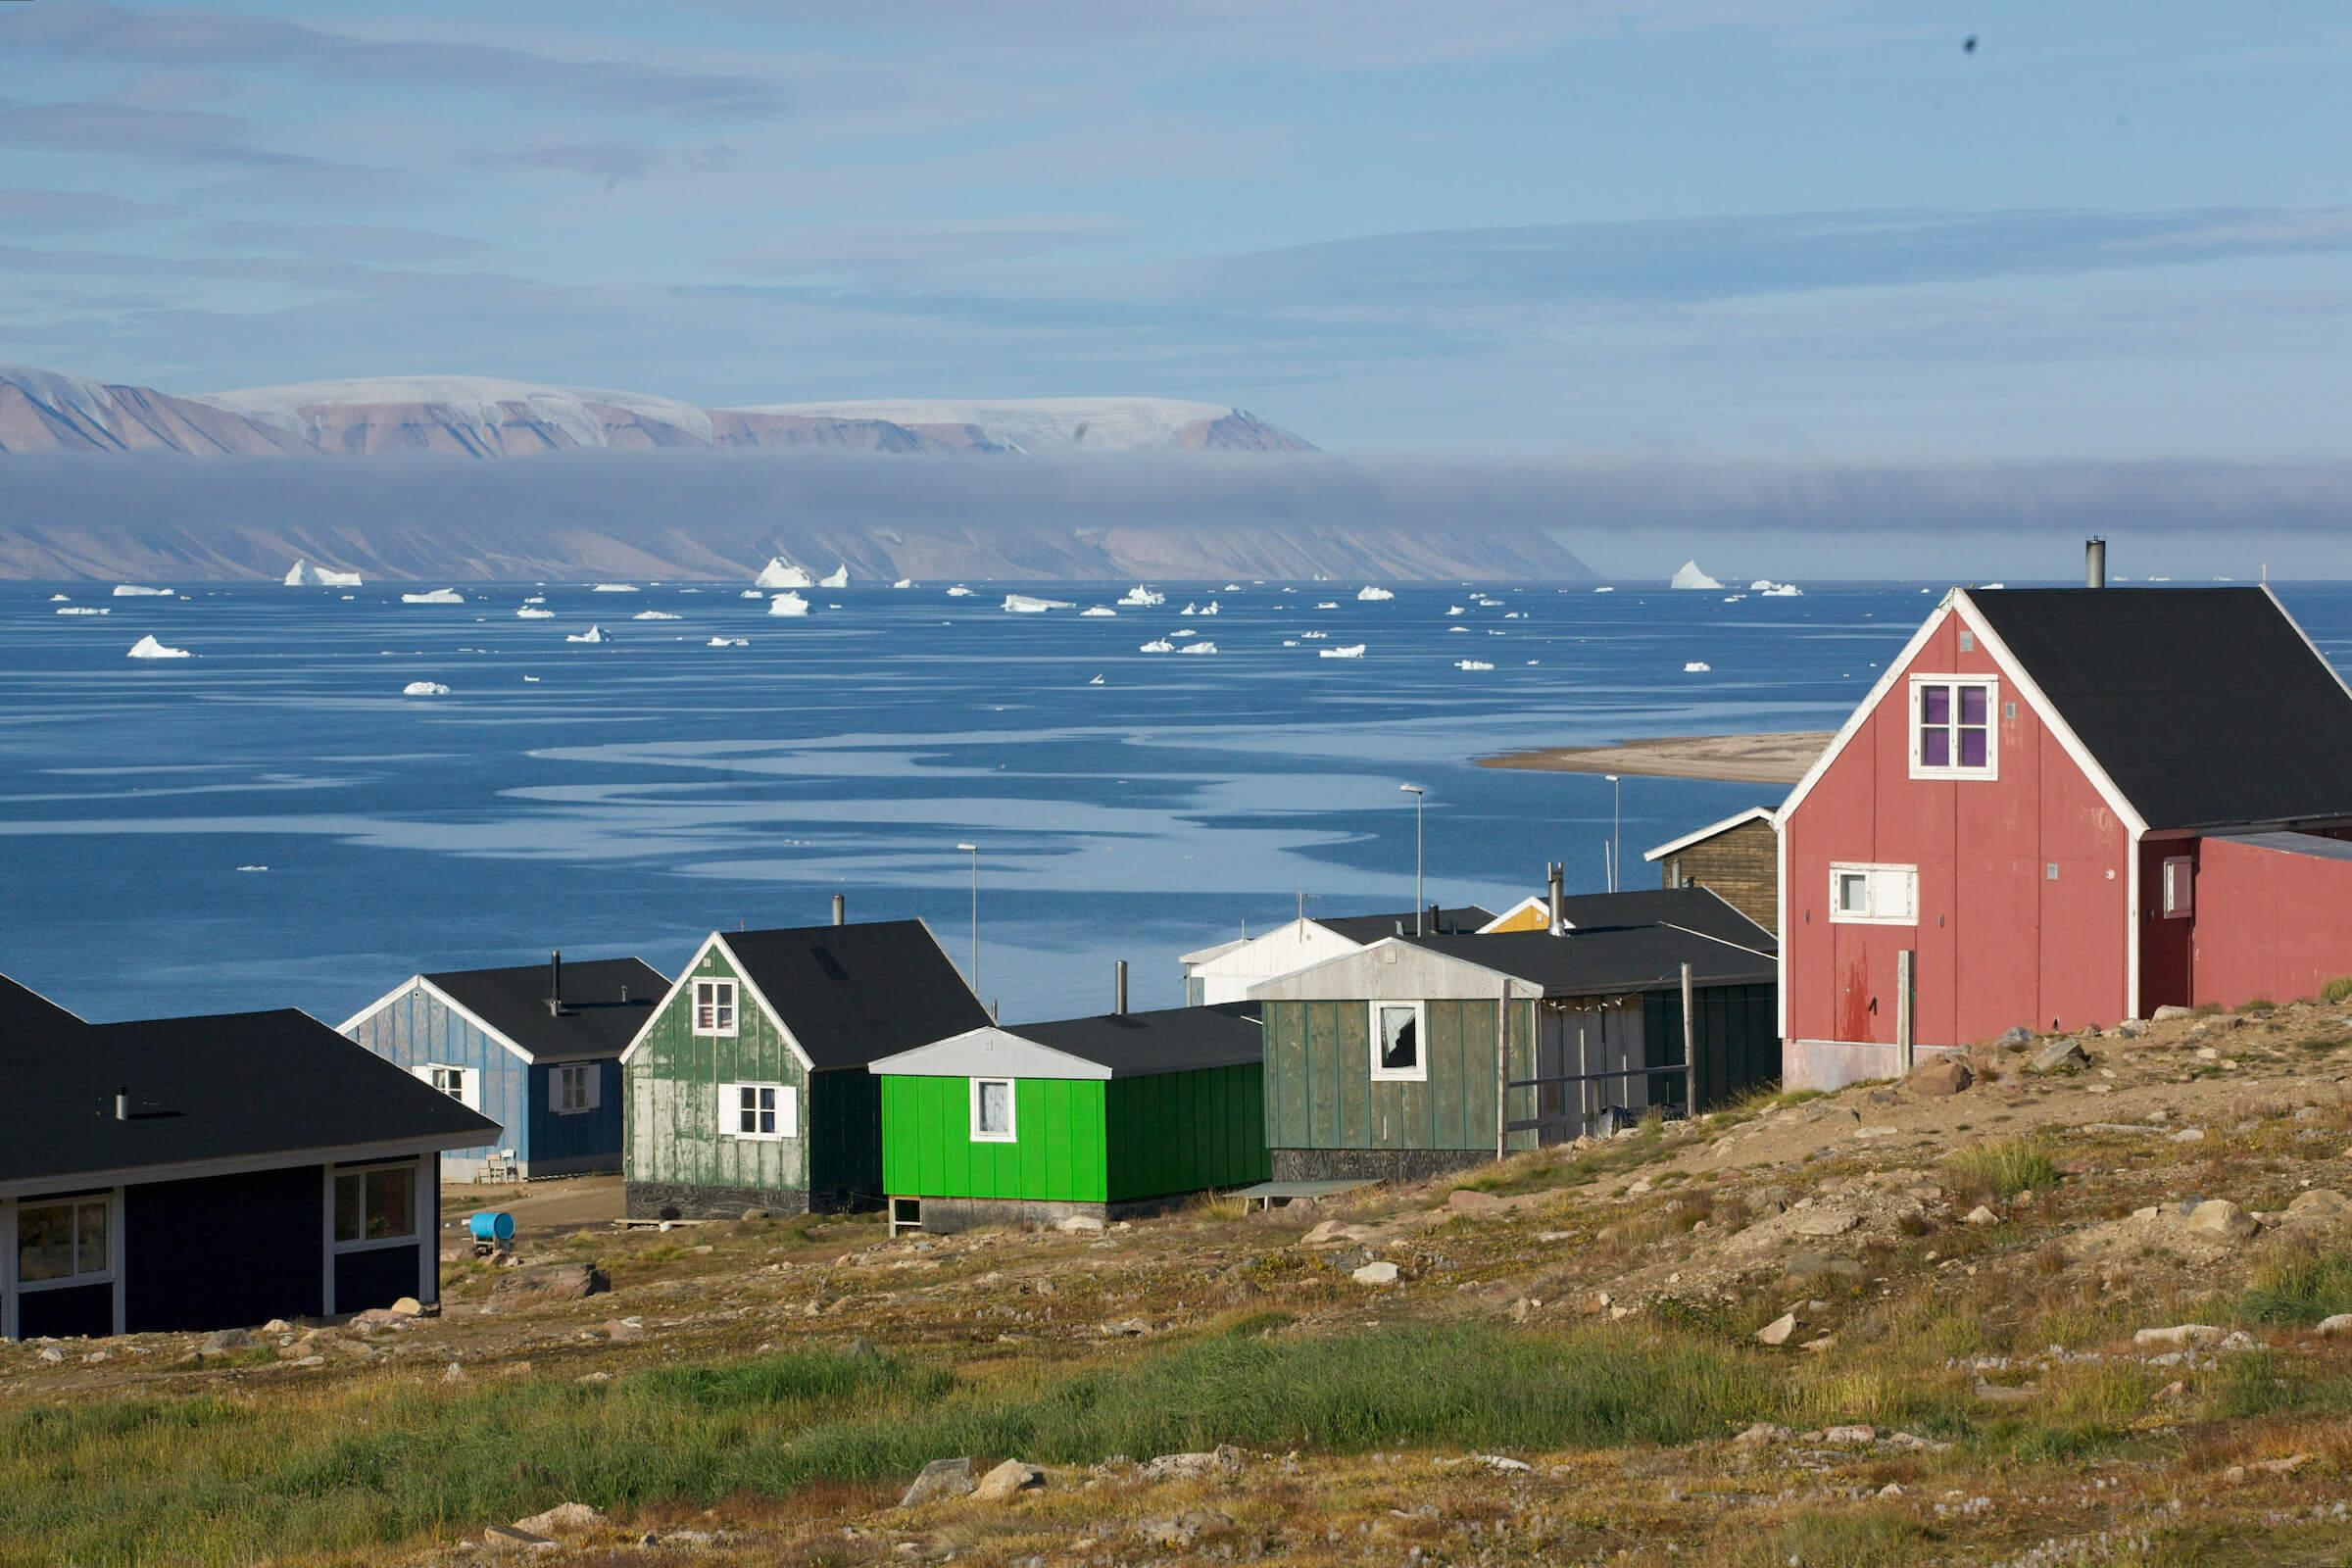 qaanaaq-with-view-over-the-sea-towards-herbert-island_11047025346_o-2